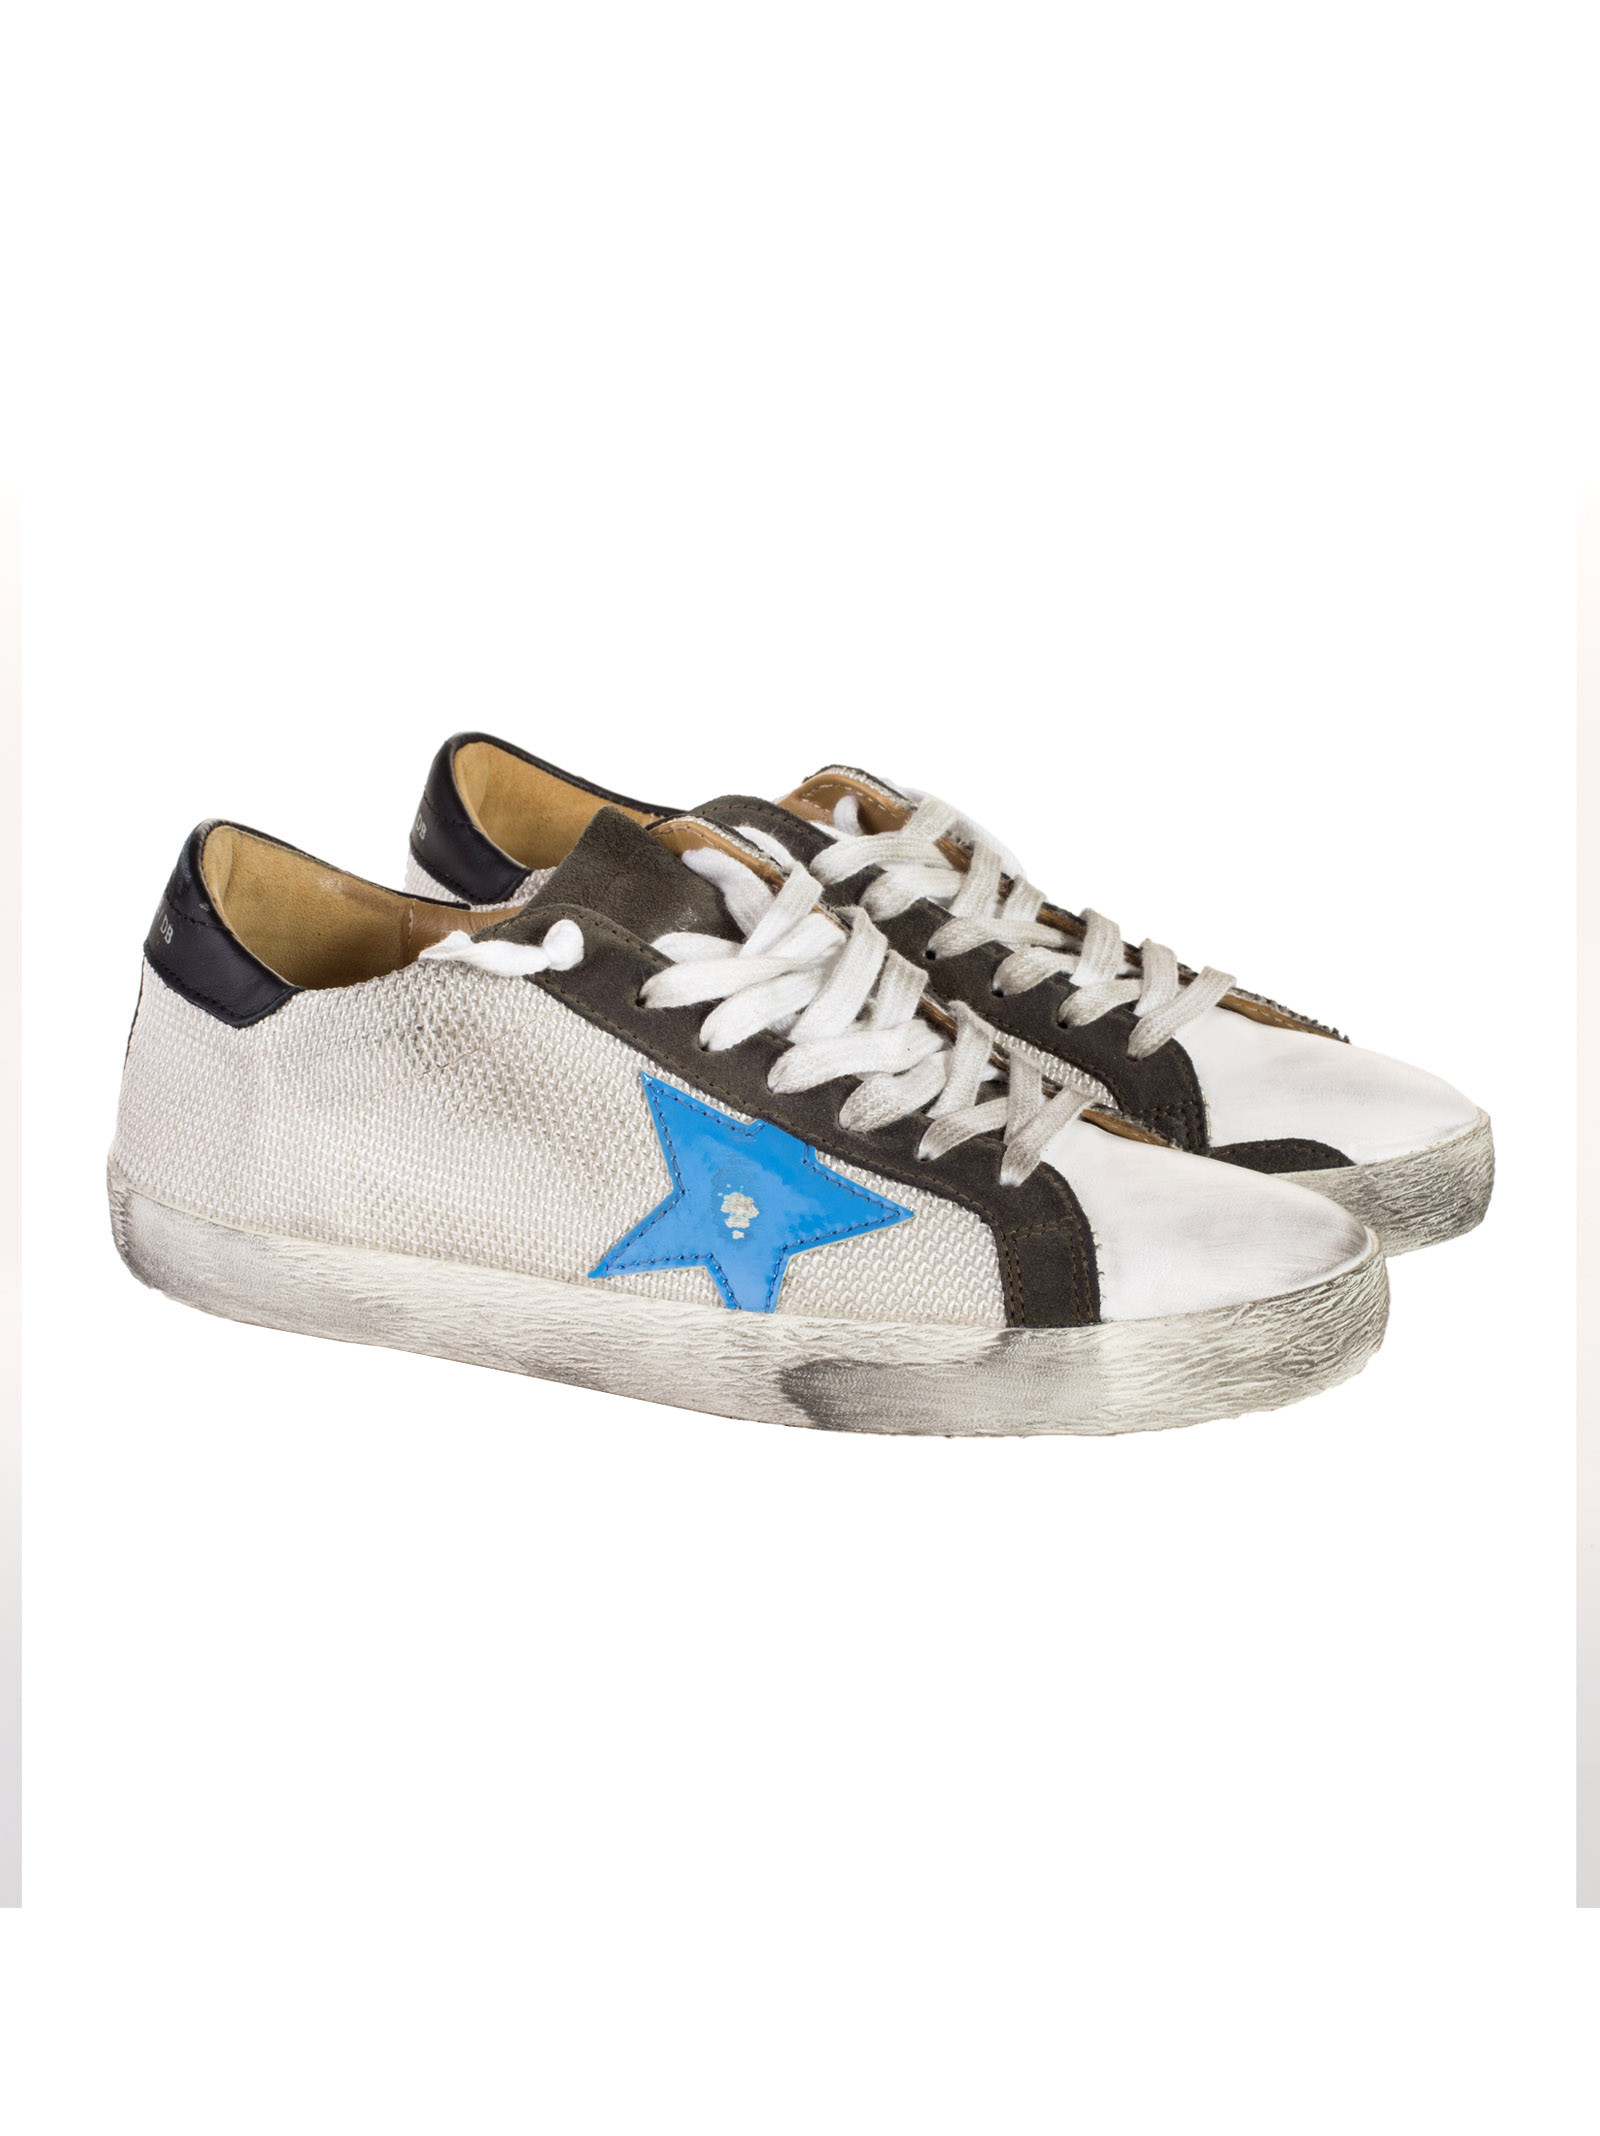 Golden Goose - Golden Goose Super Star Sneakers - G28MS590.A42, Men's Sneakers | Italist